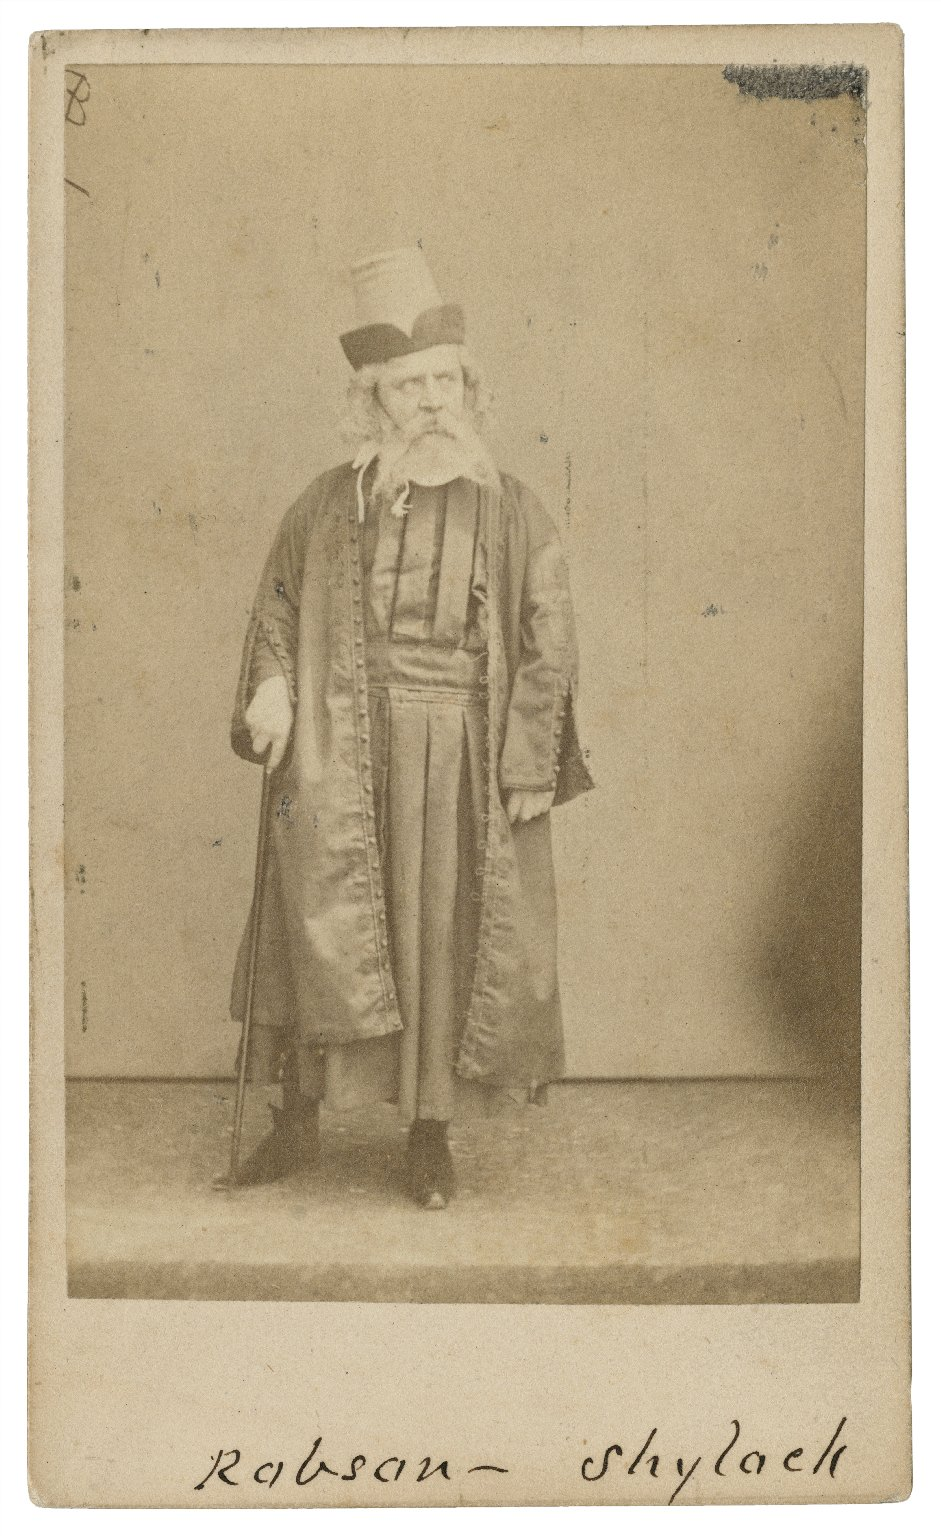 [Robson as burlesque Shylock in Francis Talfourd's Shylock; or the Merchant of Venice preserved, Olympic Theatre, London, 1853] [graphic].